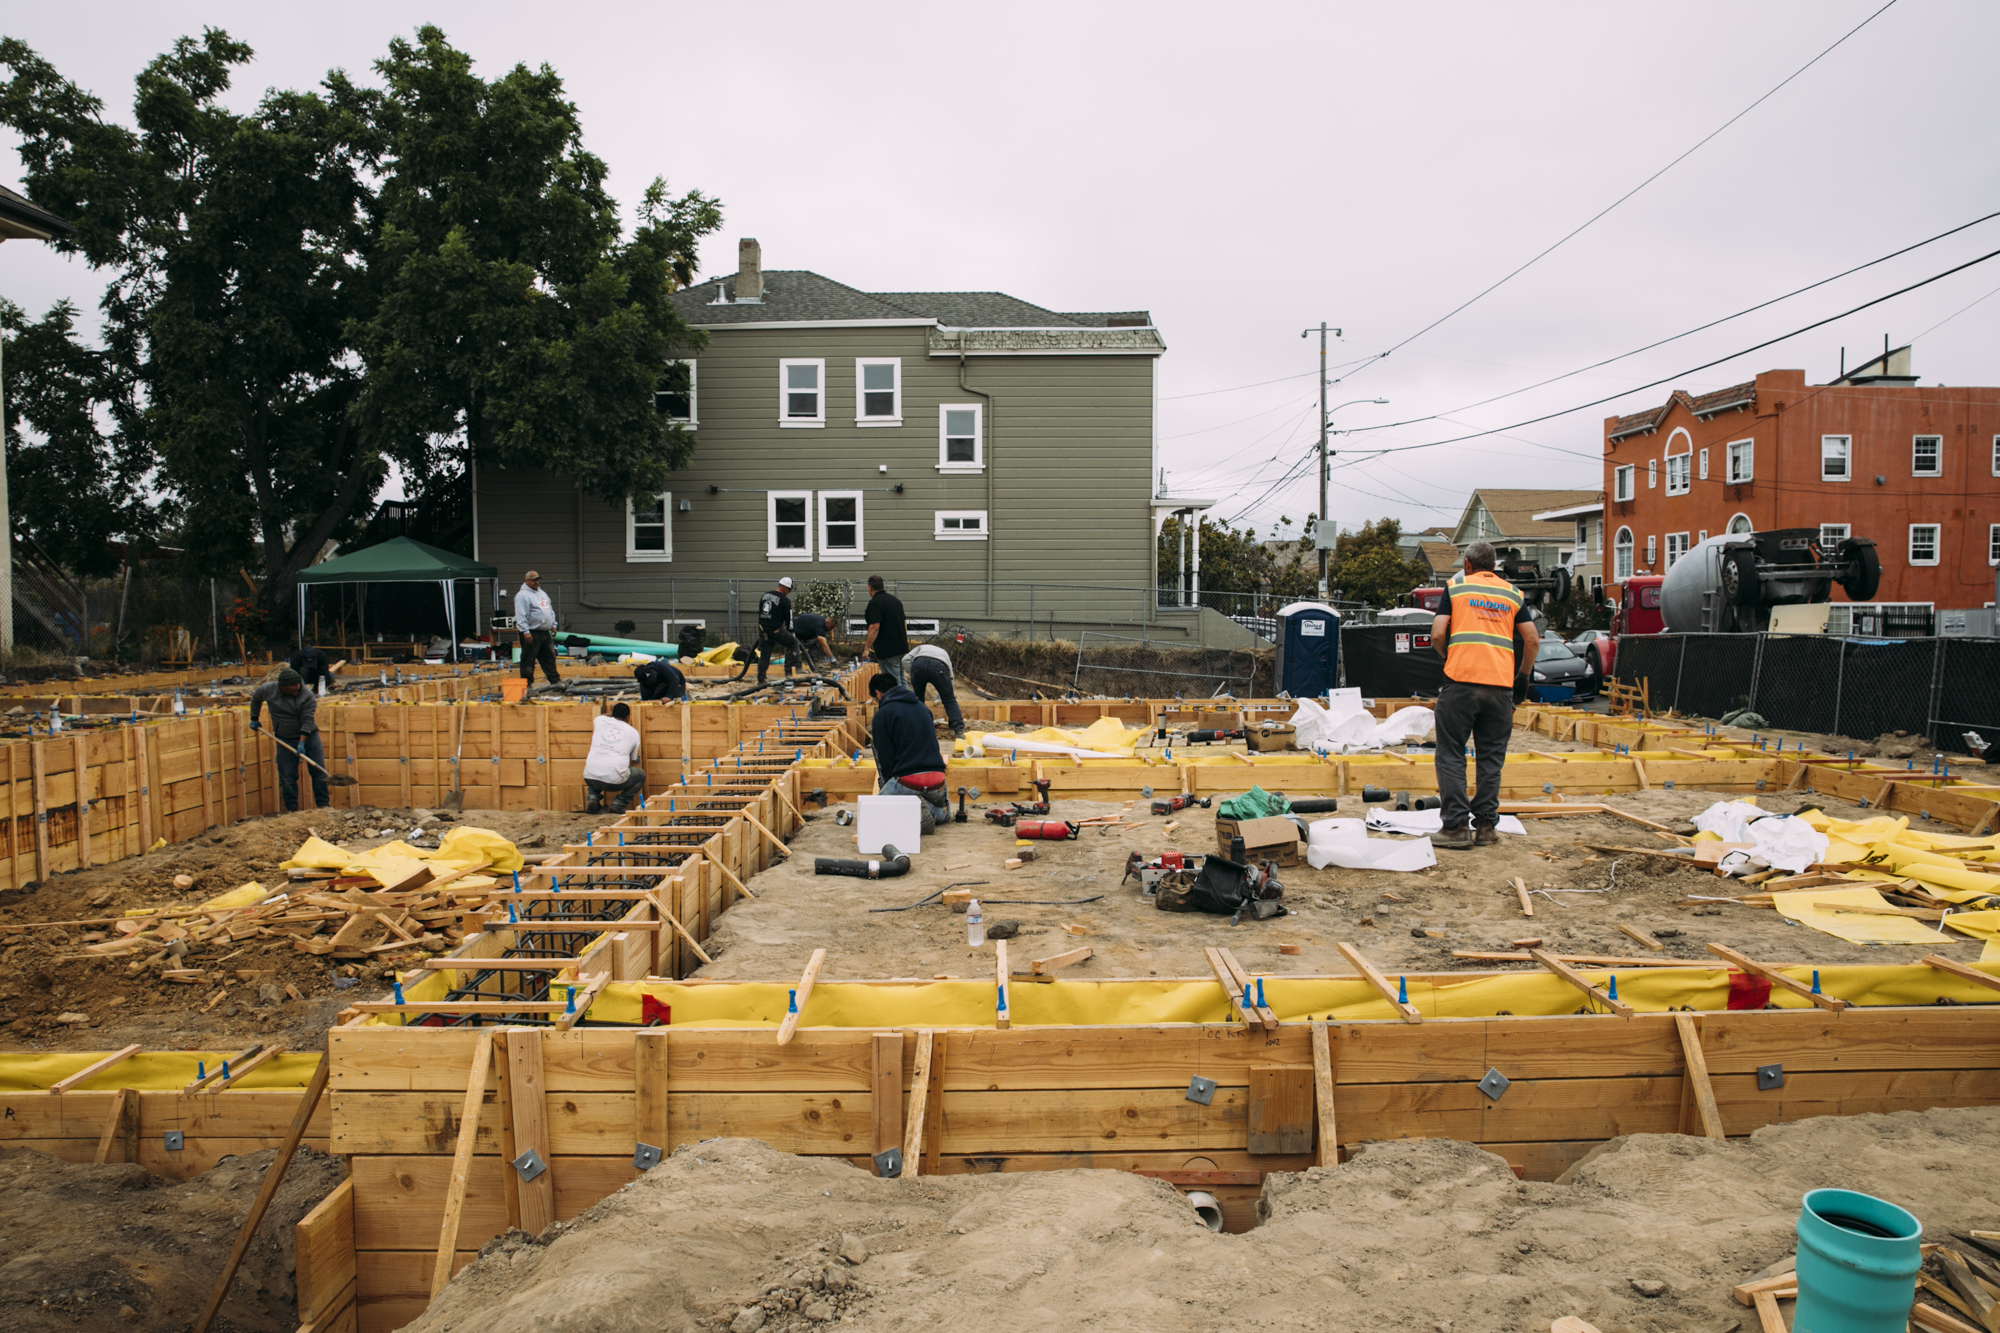 061019-00297_18thLinden_Construction.jpg